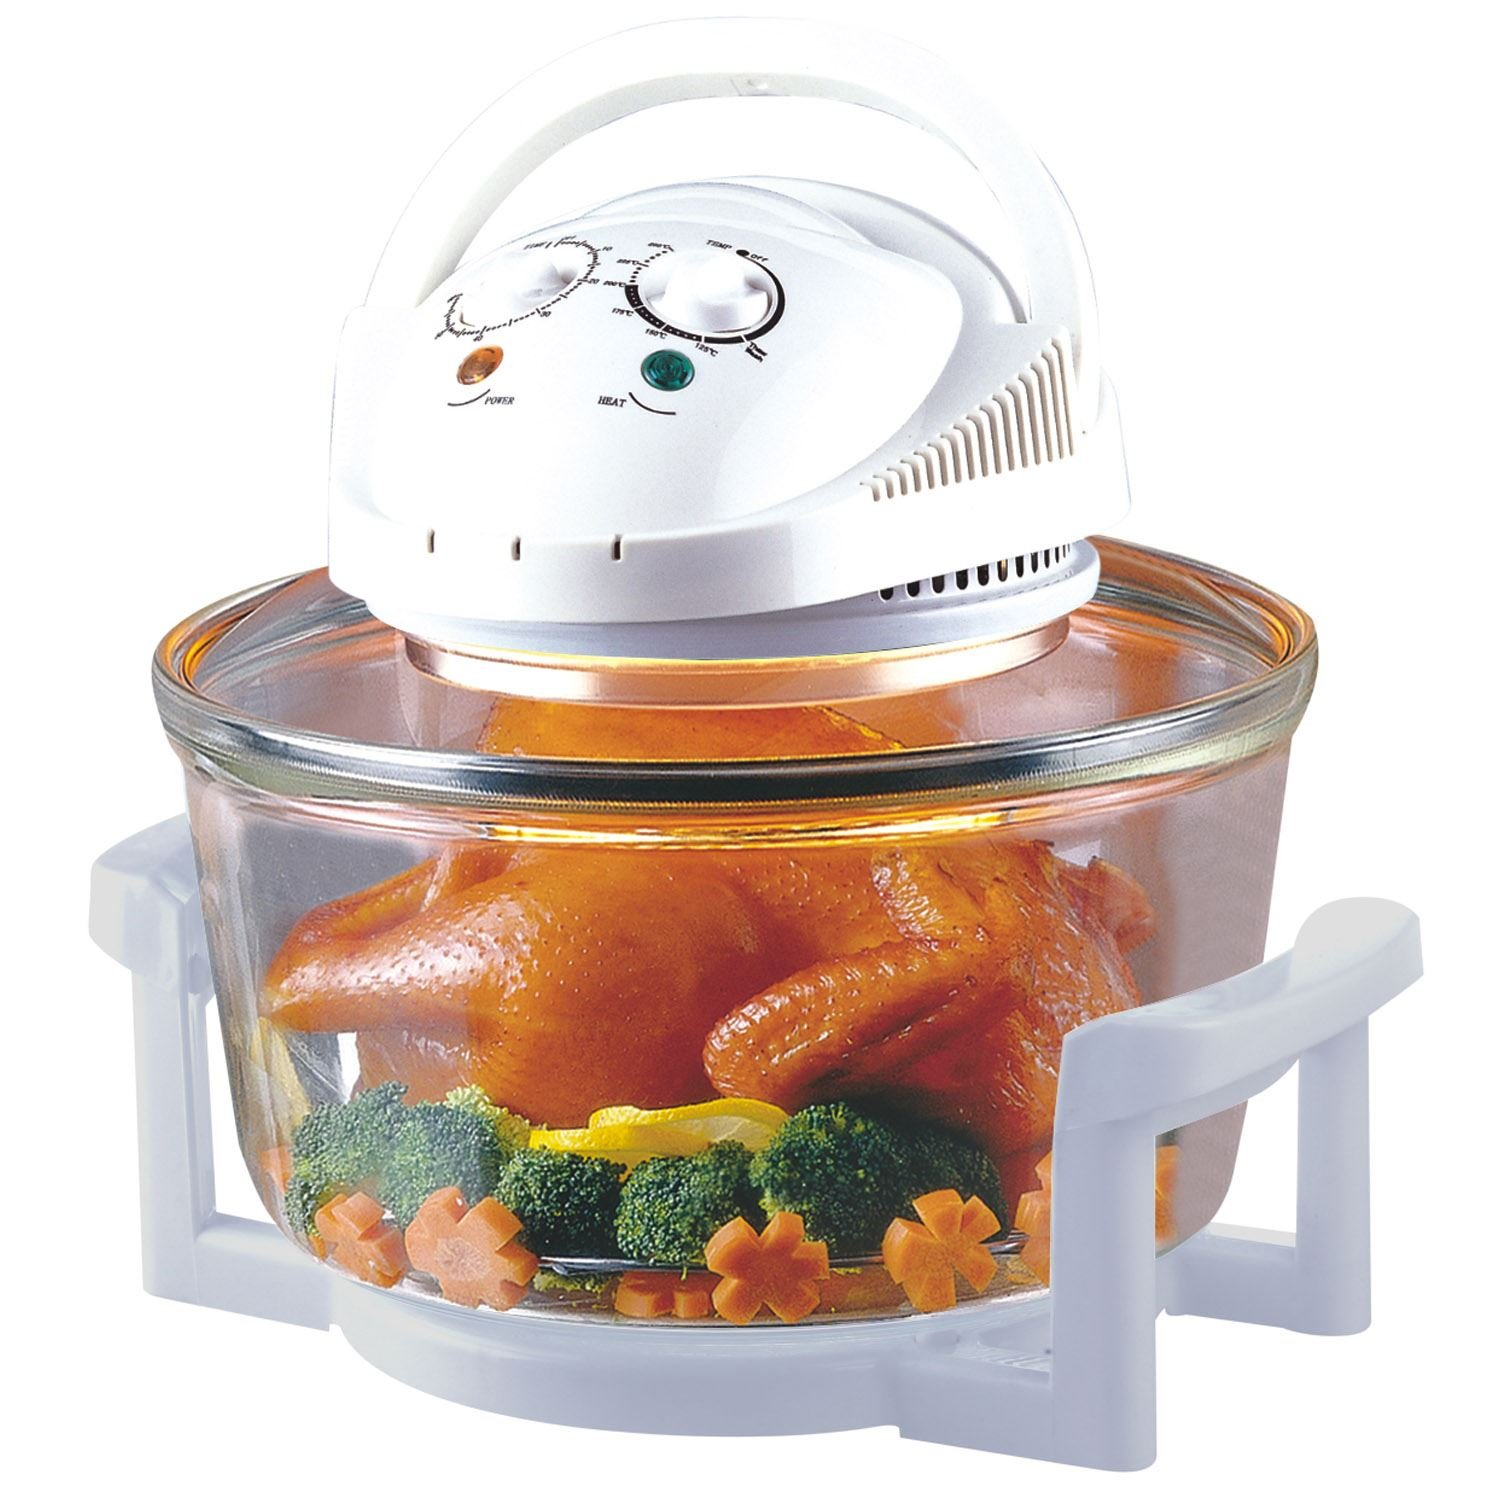 12 Litre Premium 1200W Halogen Oven Cooker with High Rack, Low Rack and Tongs Included (Black) Sentik